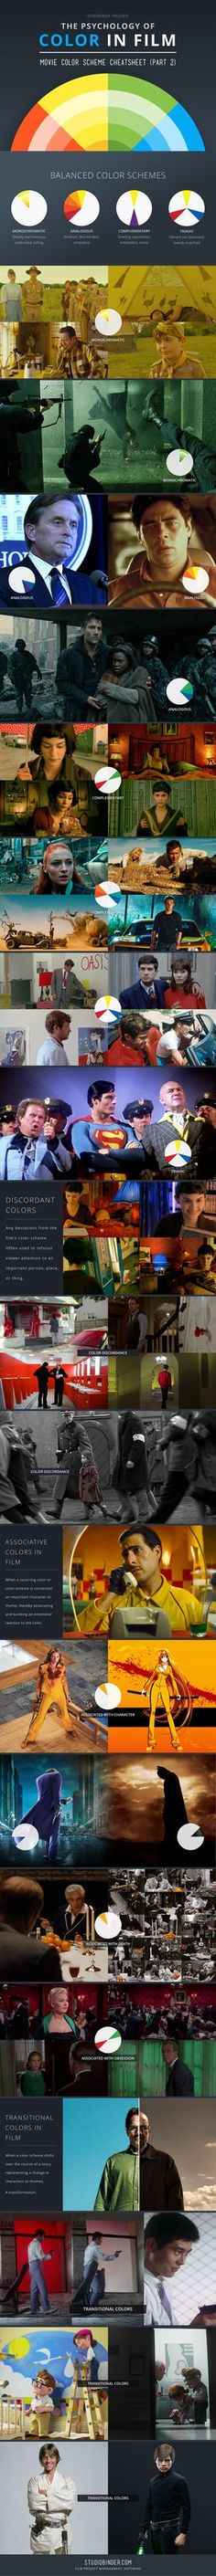 """The Psychology of Color in Film""  (Part 2) by Studio Binder 